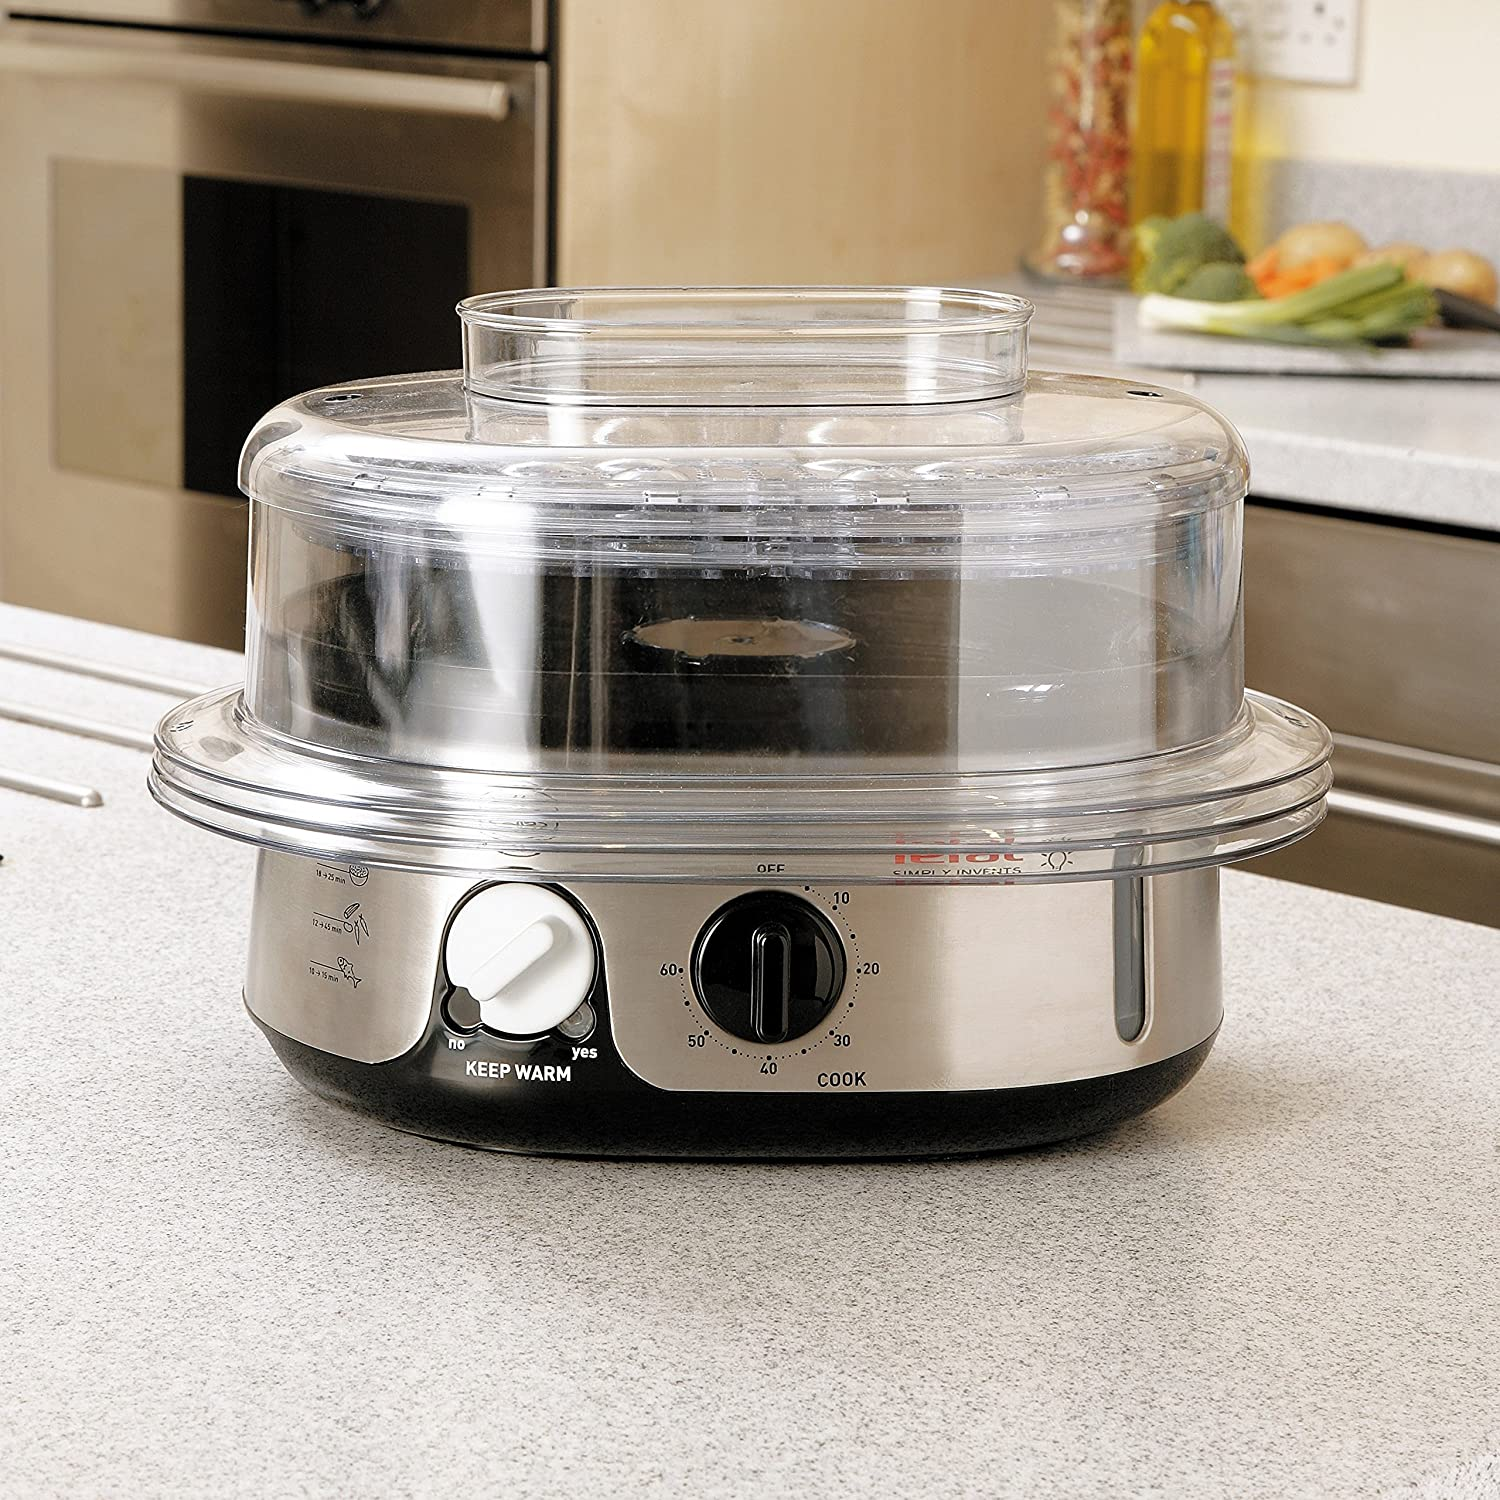 Stainless Steel Tefal Simply Invents Steamer 3 Dismantlable Plastic Bowls